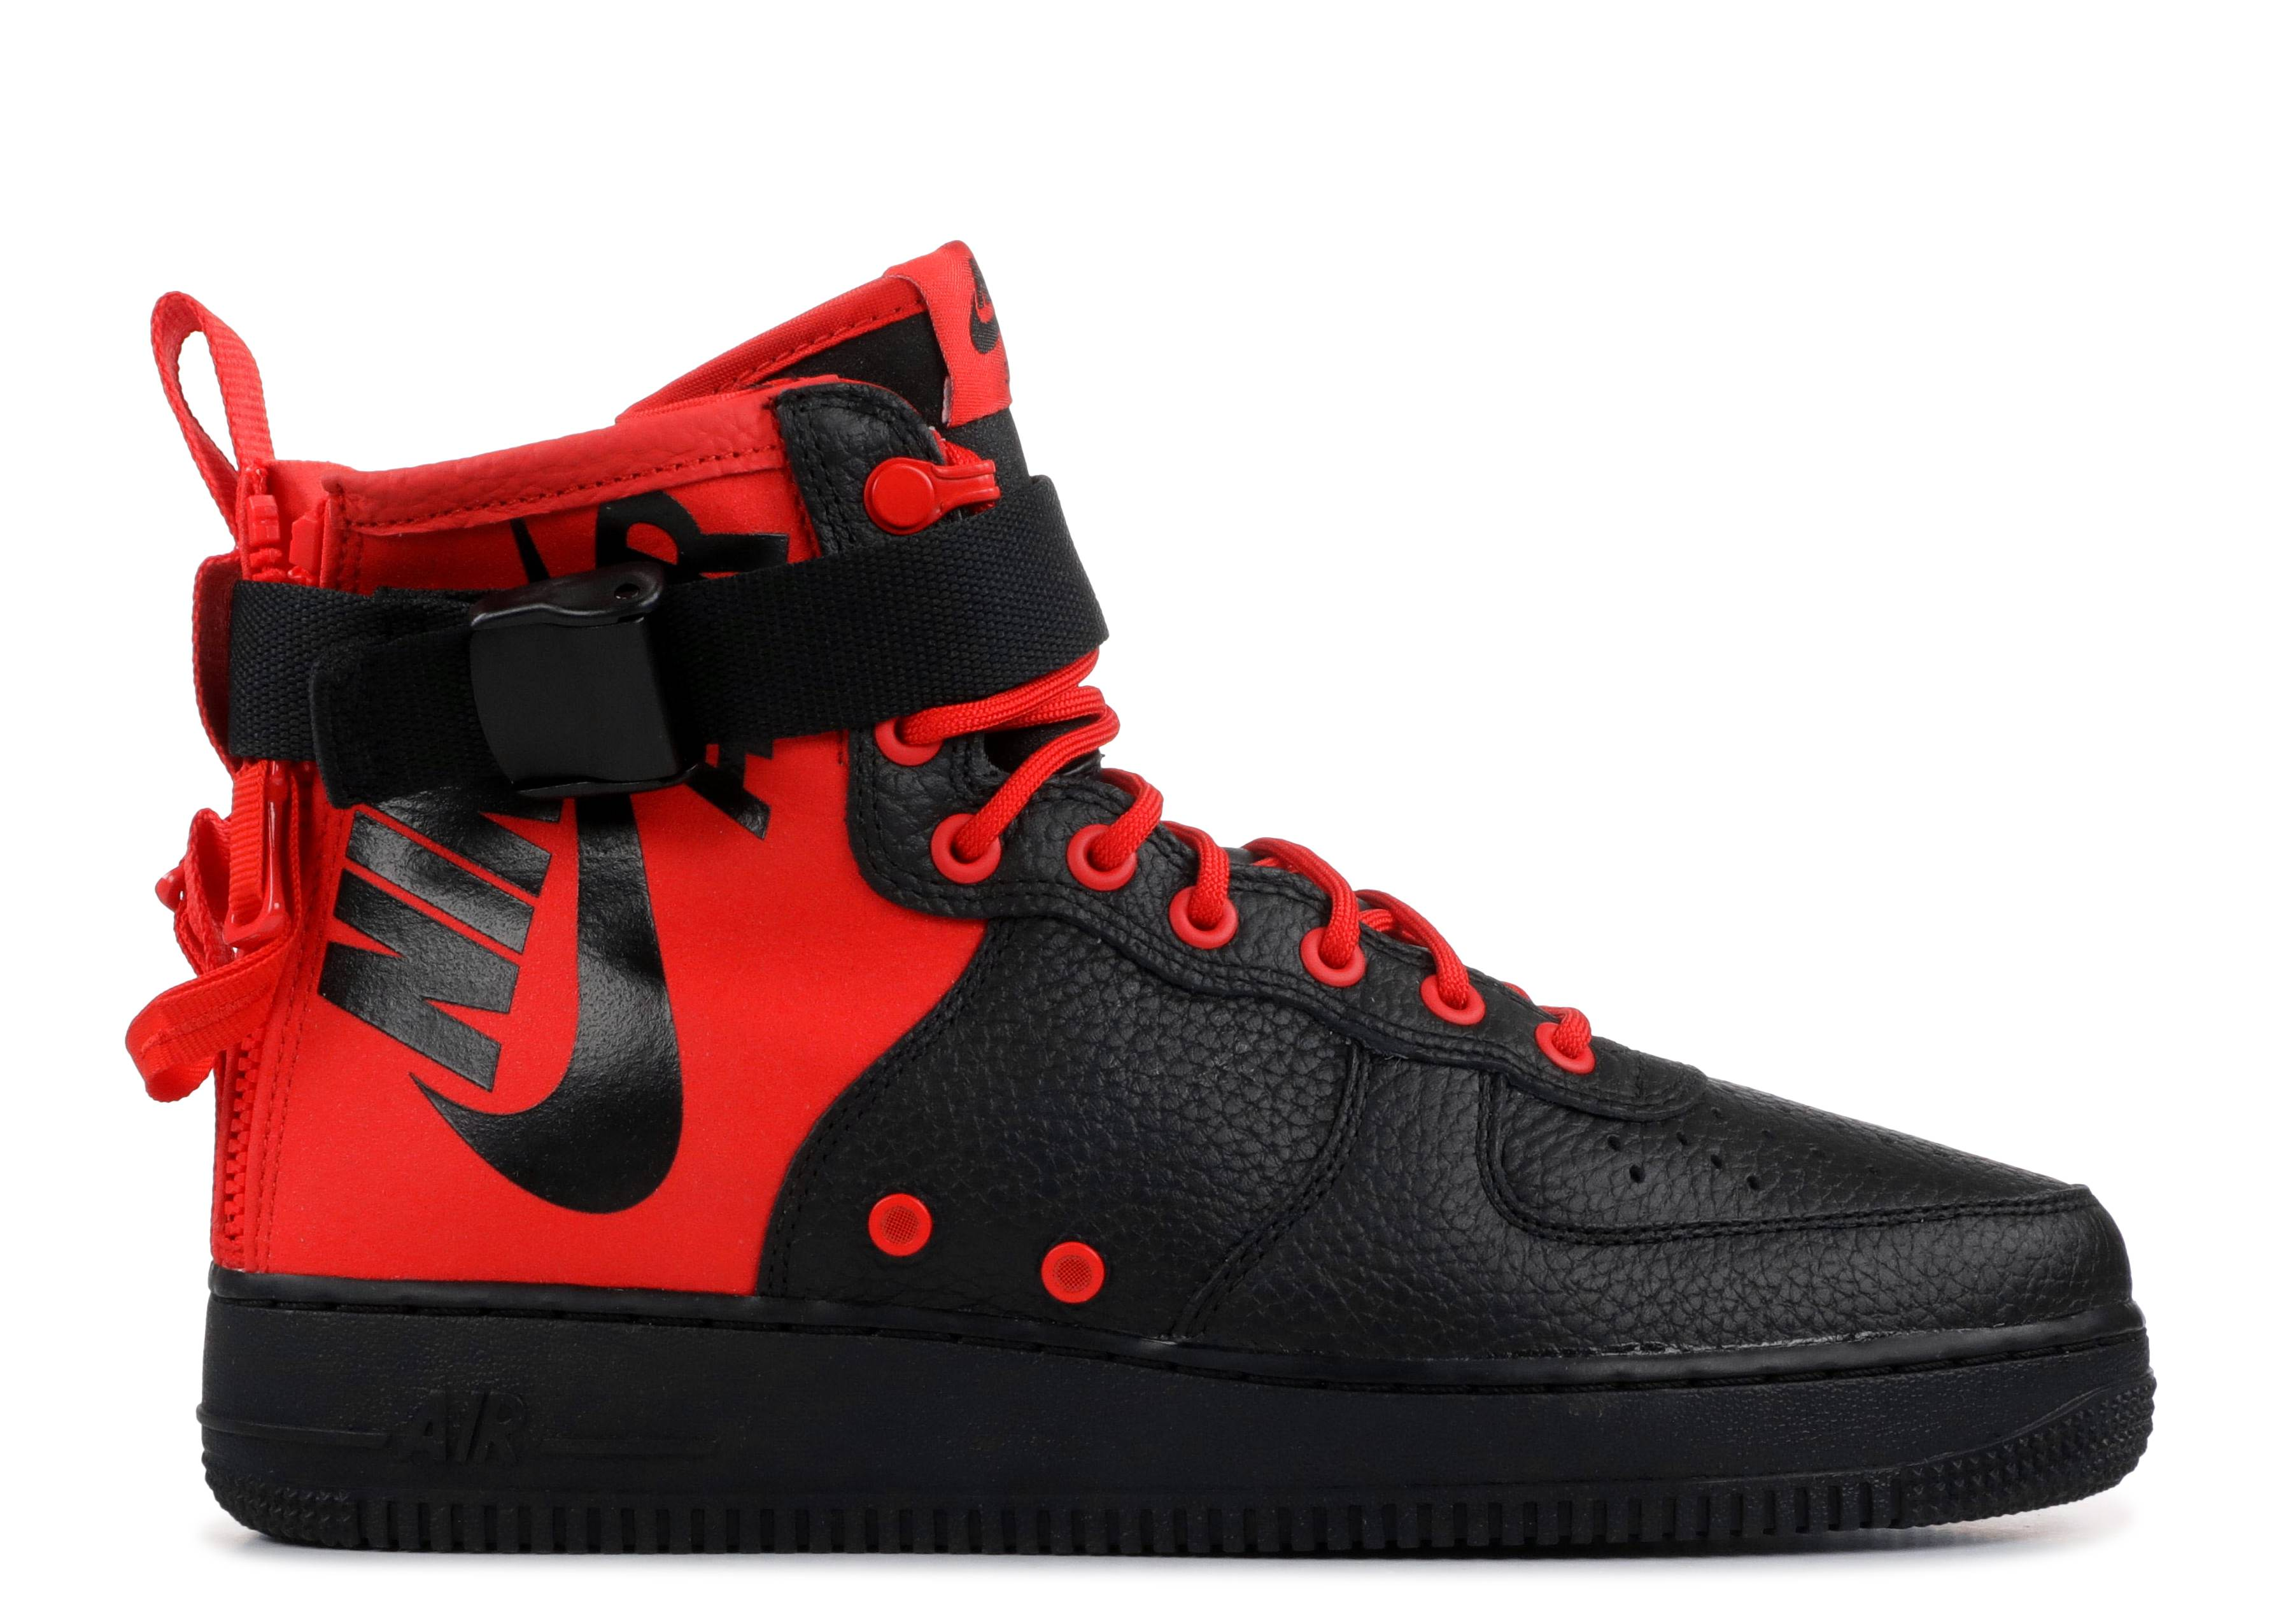 Nike Mens Sf Air Force 1 Mid Casual Sneakers,